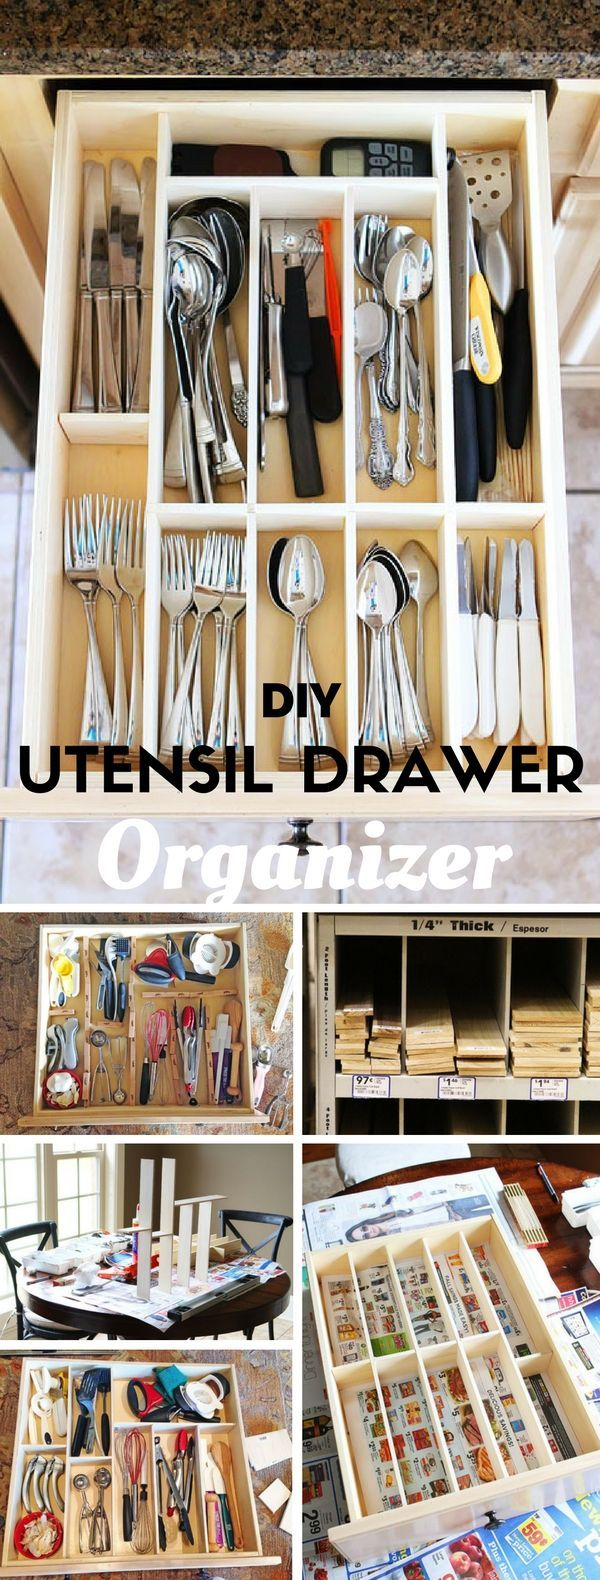 Check out this easy idea on how to make a #DIY #kitchen utensil drawer organizer for #homedecor on a #budget #project @istandarddesign